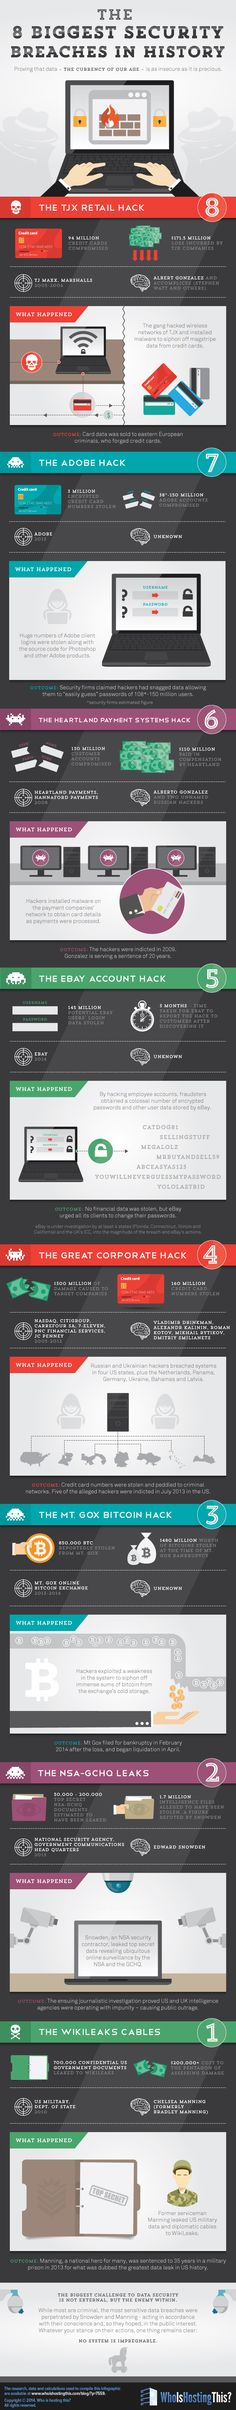 The biggest security breaches in history